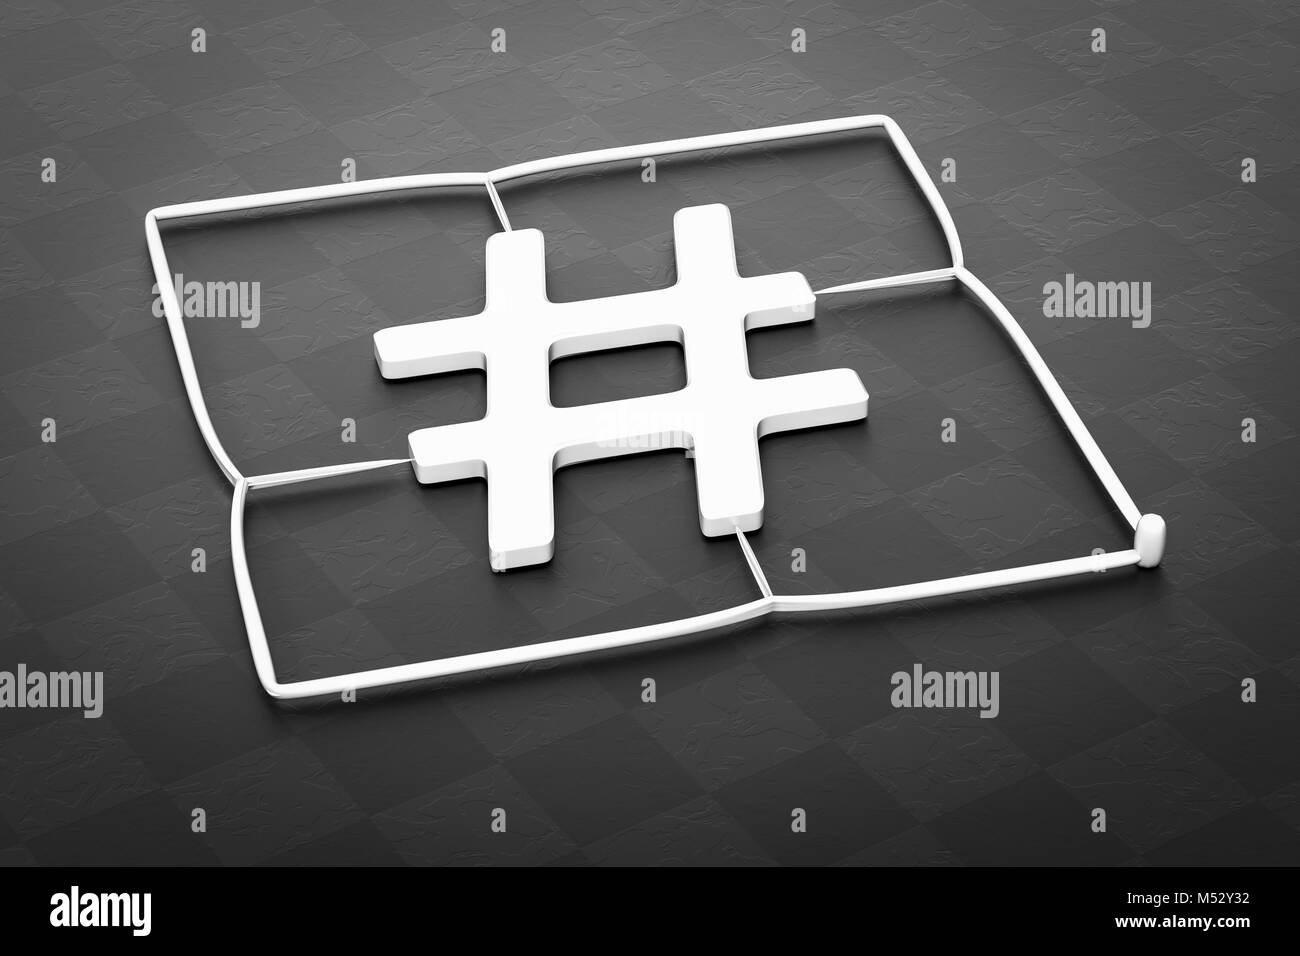 plastic injection molding hashtag sign - Stock Image